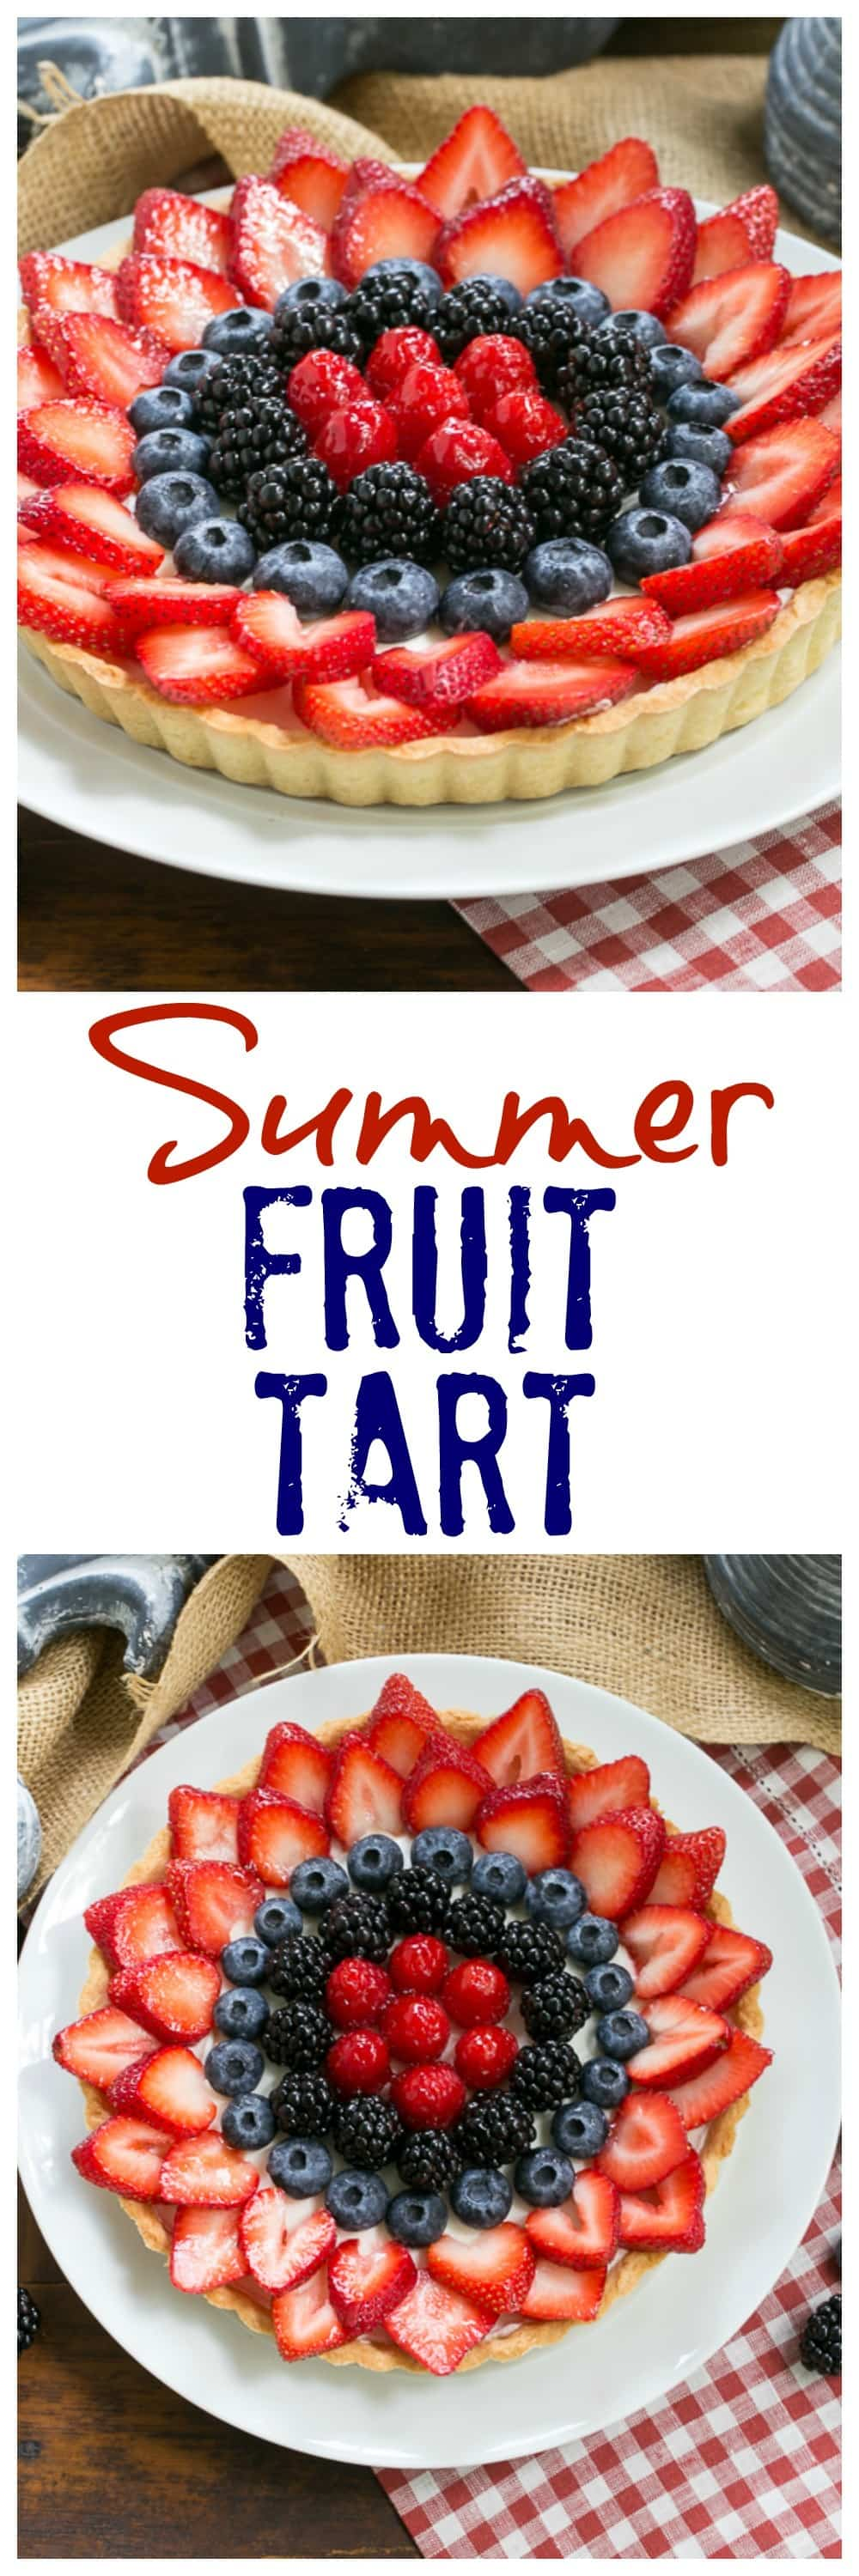 Summer Fruit Tart collage